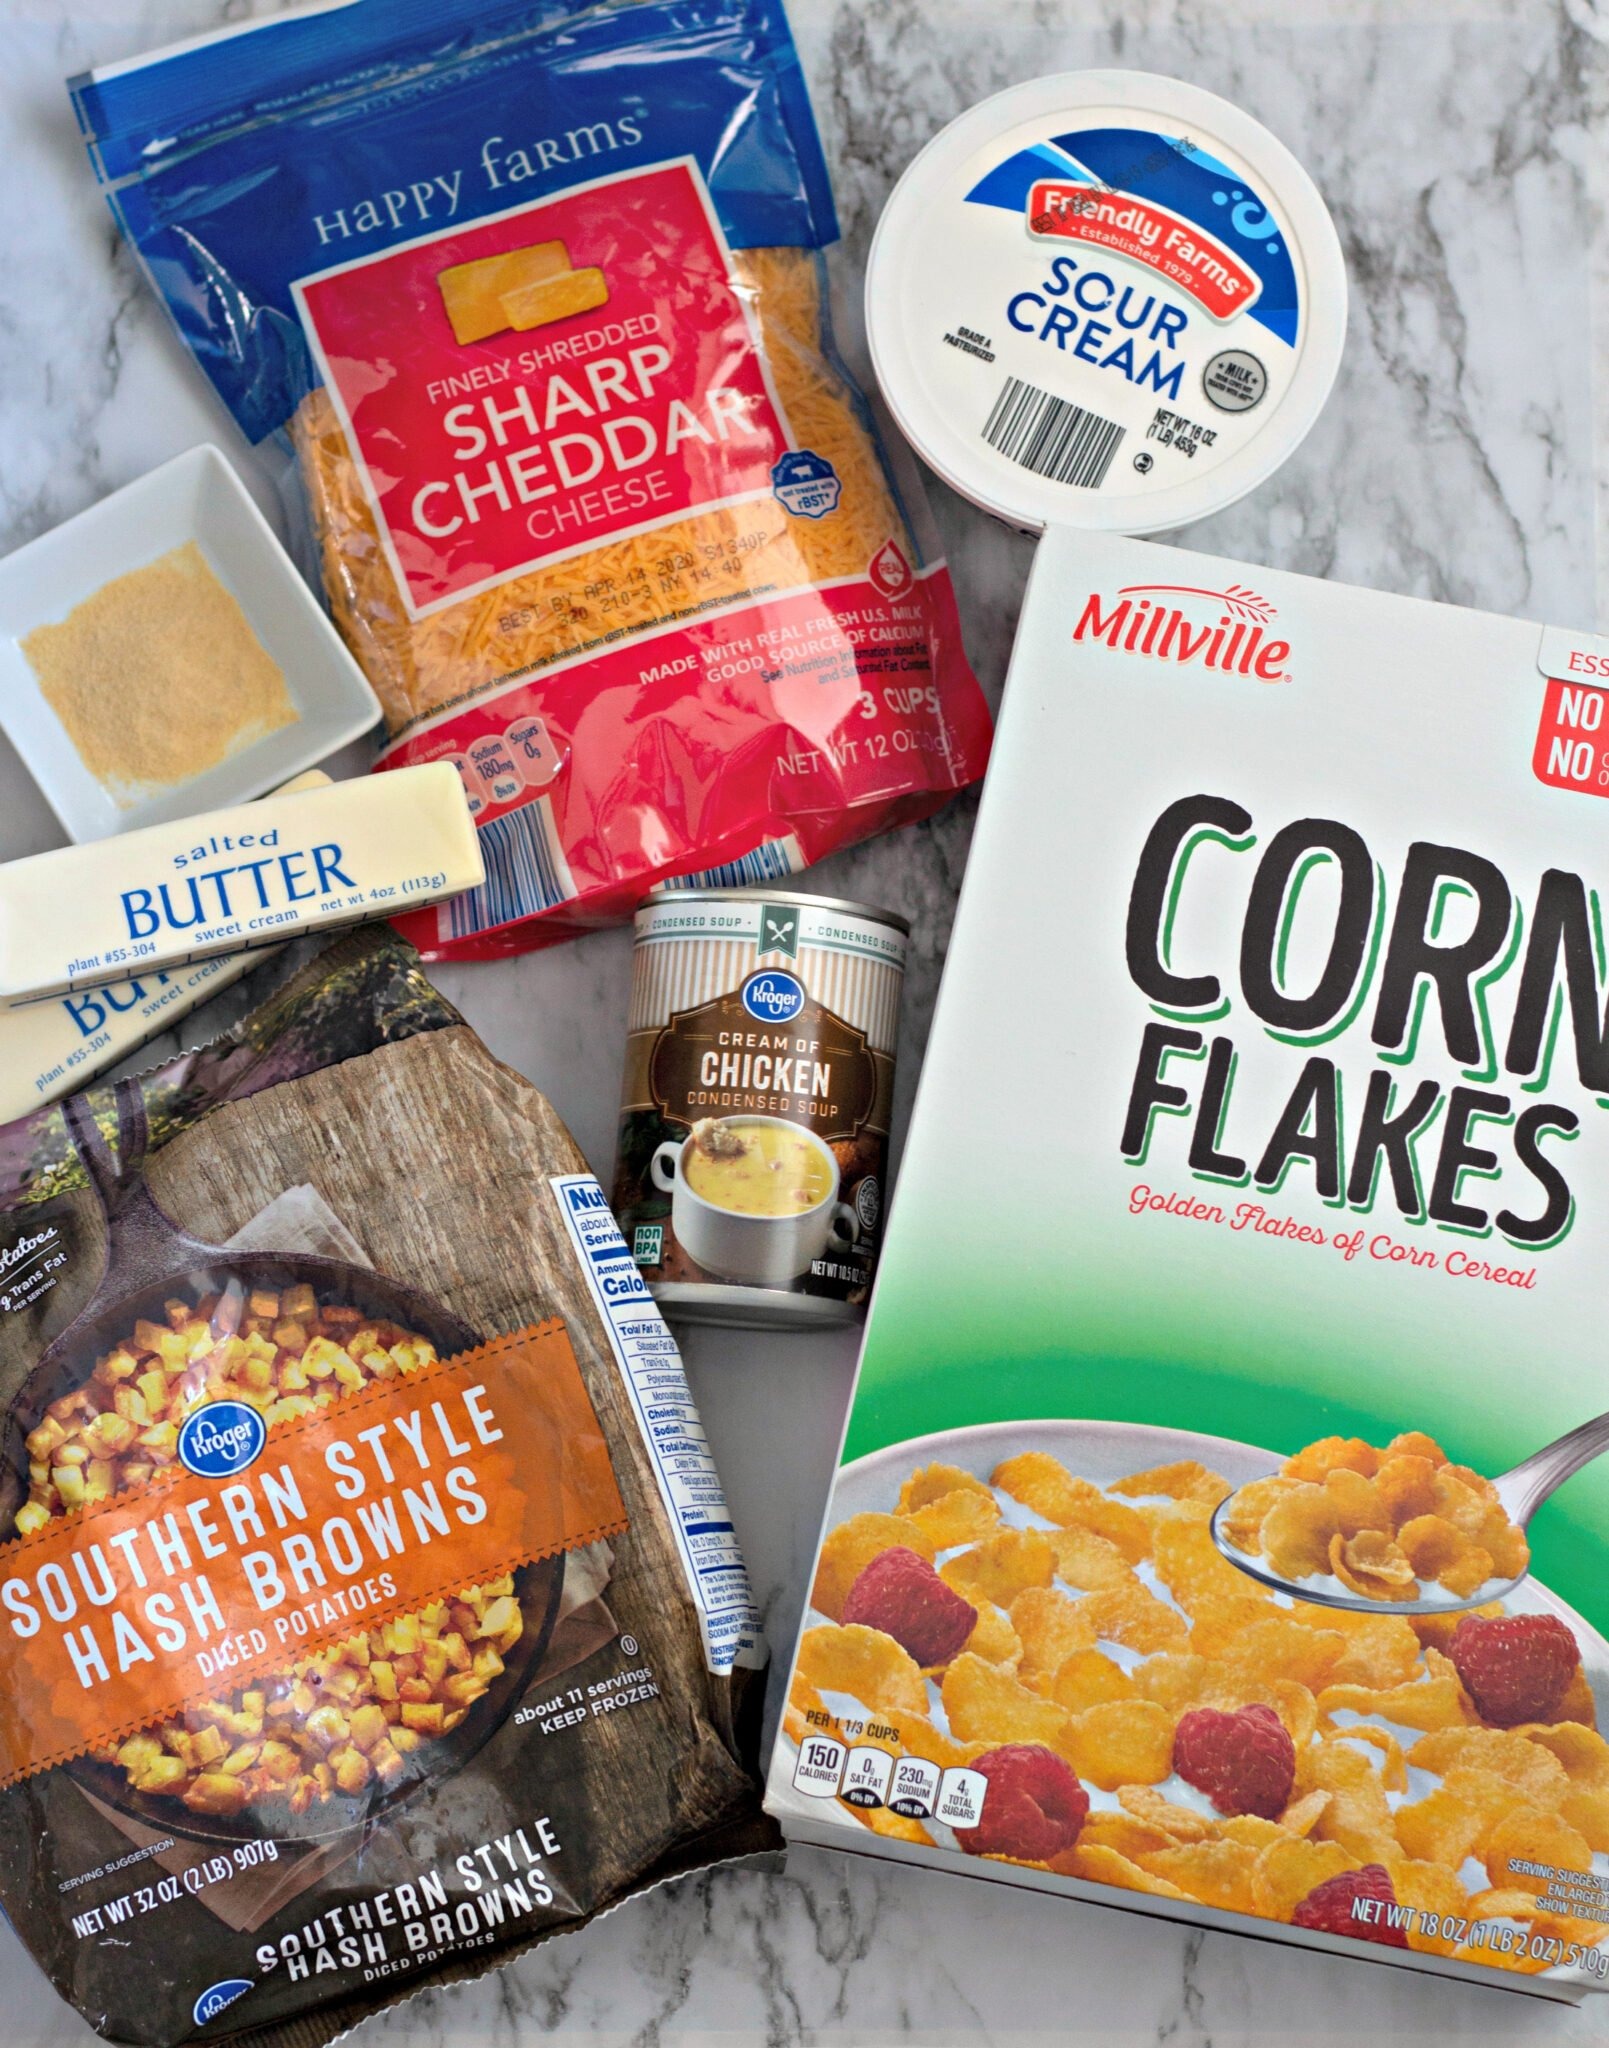 Needed ingredients for funeral potatoes include diced frozen potatoes, cheese, cornflakes, butter, and cream of chicken soup.